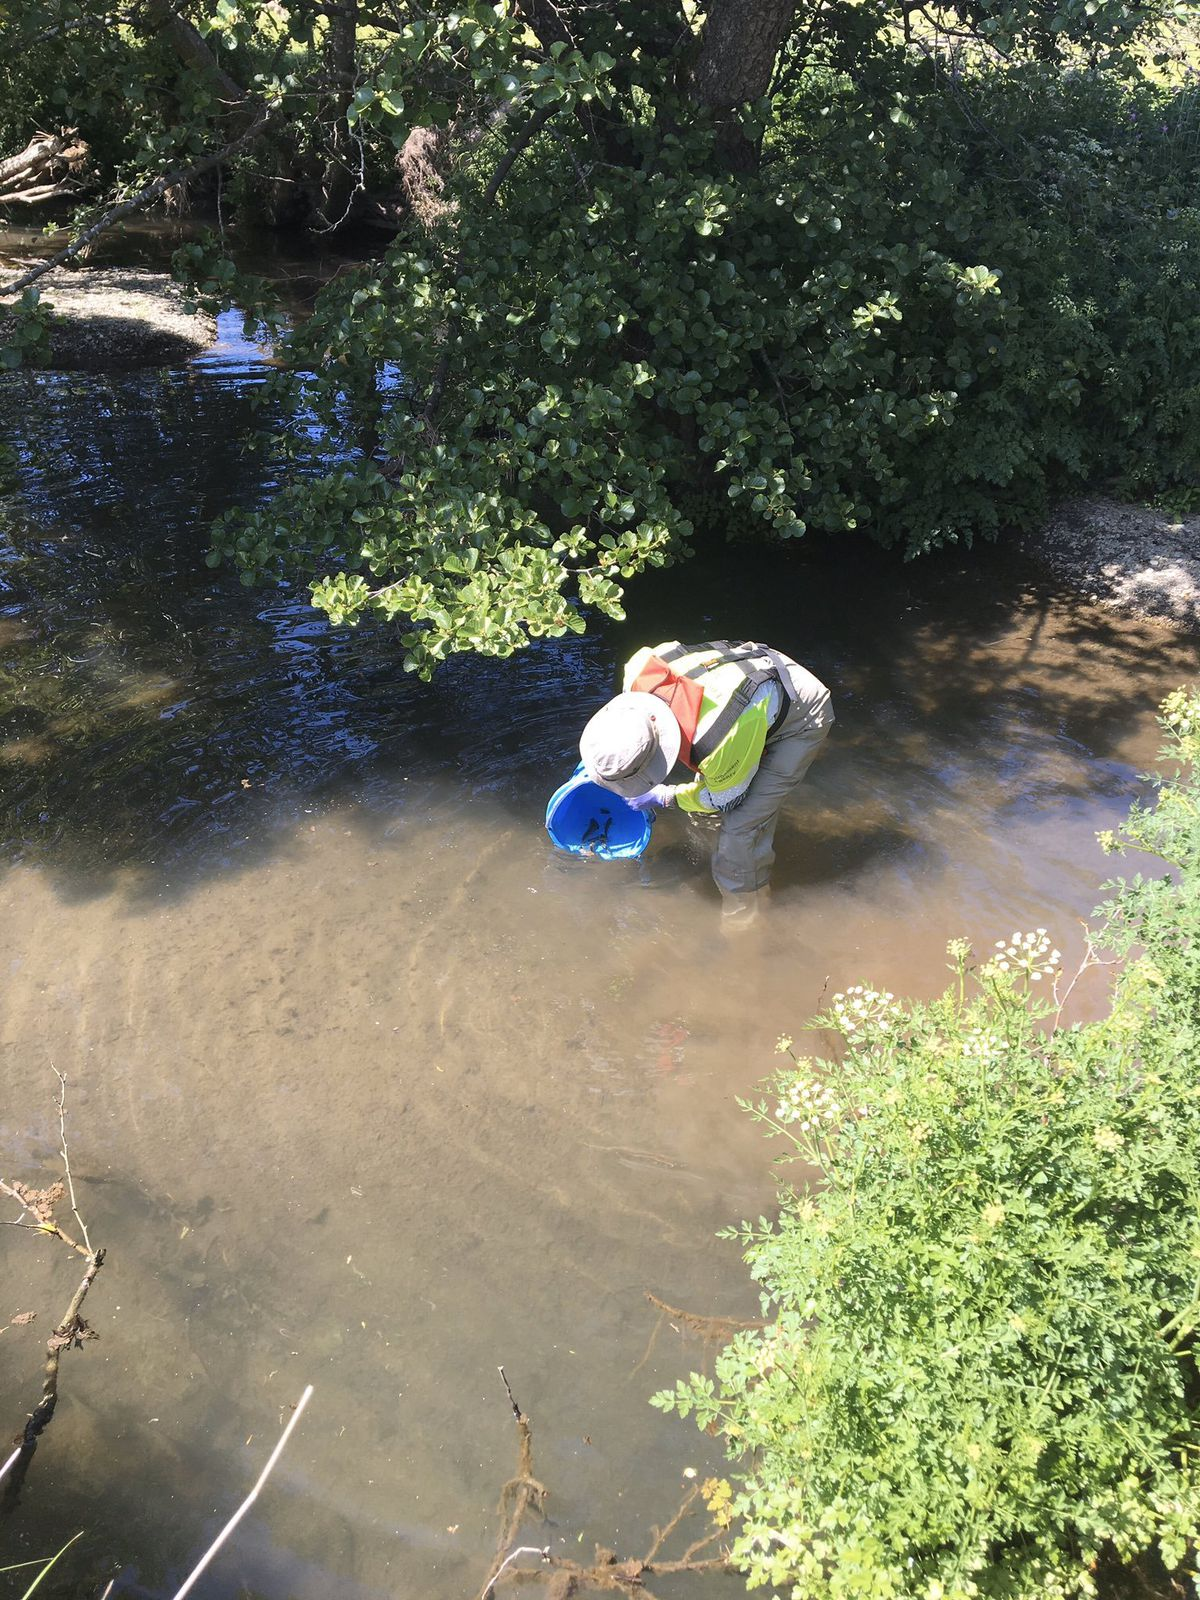 A worker rescues fish from the river. Picture: Dave Throup